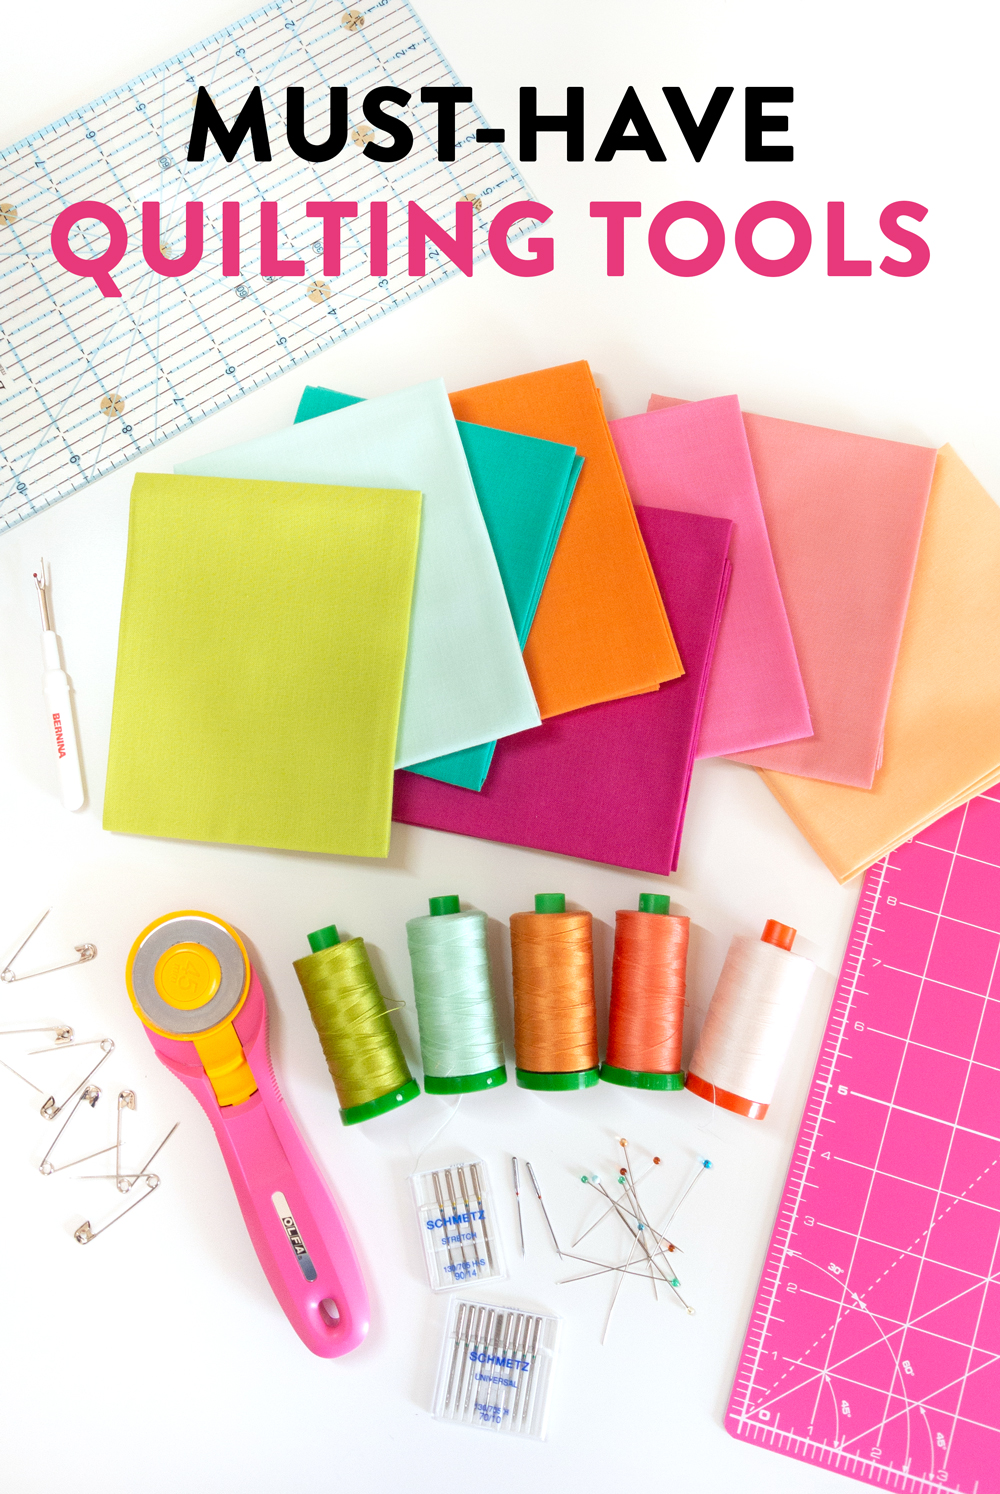 A checklist for the best must-have quilting tools. Great for beginners and also as gifts for quilters!